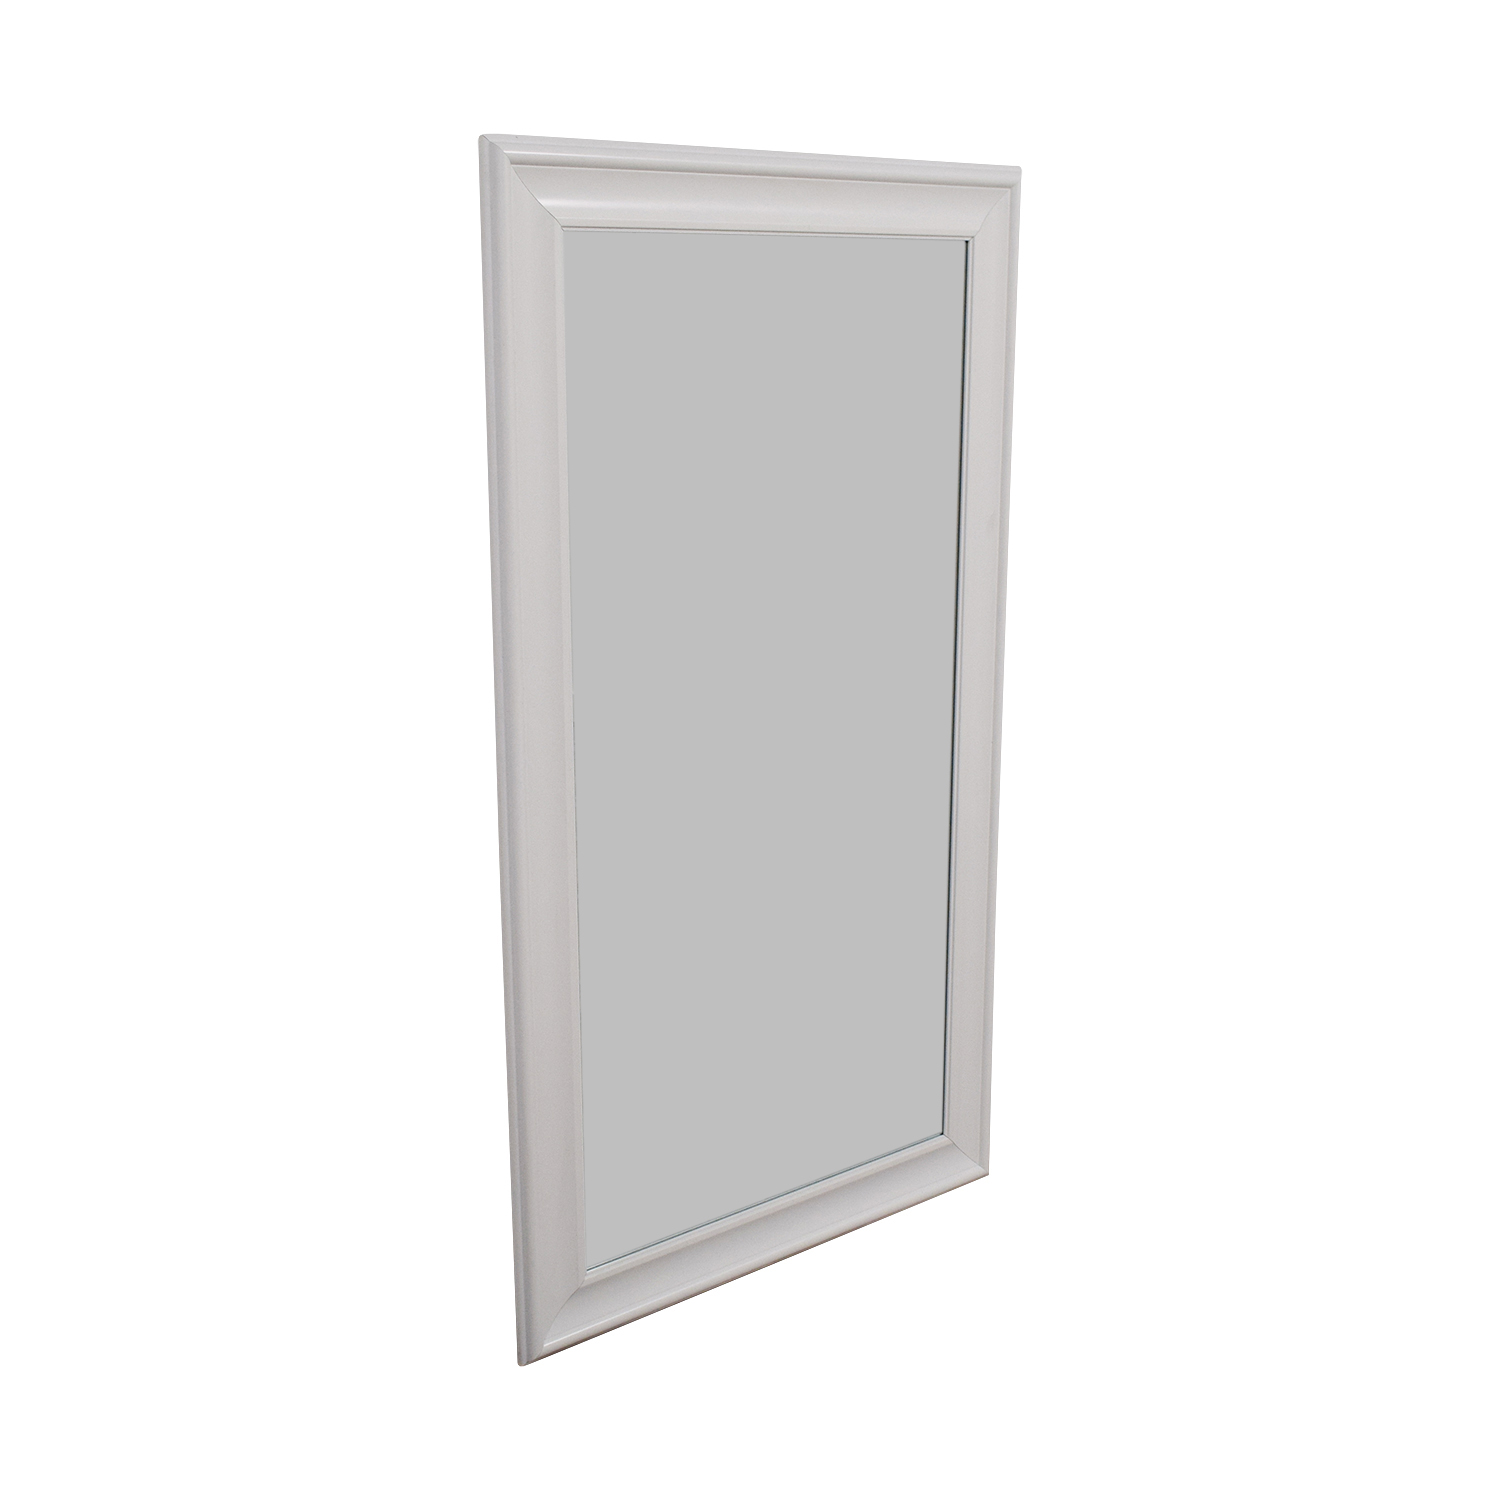 White Full Length Mirror used